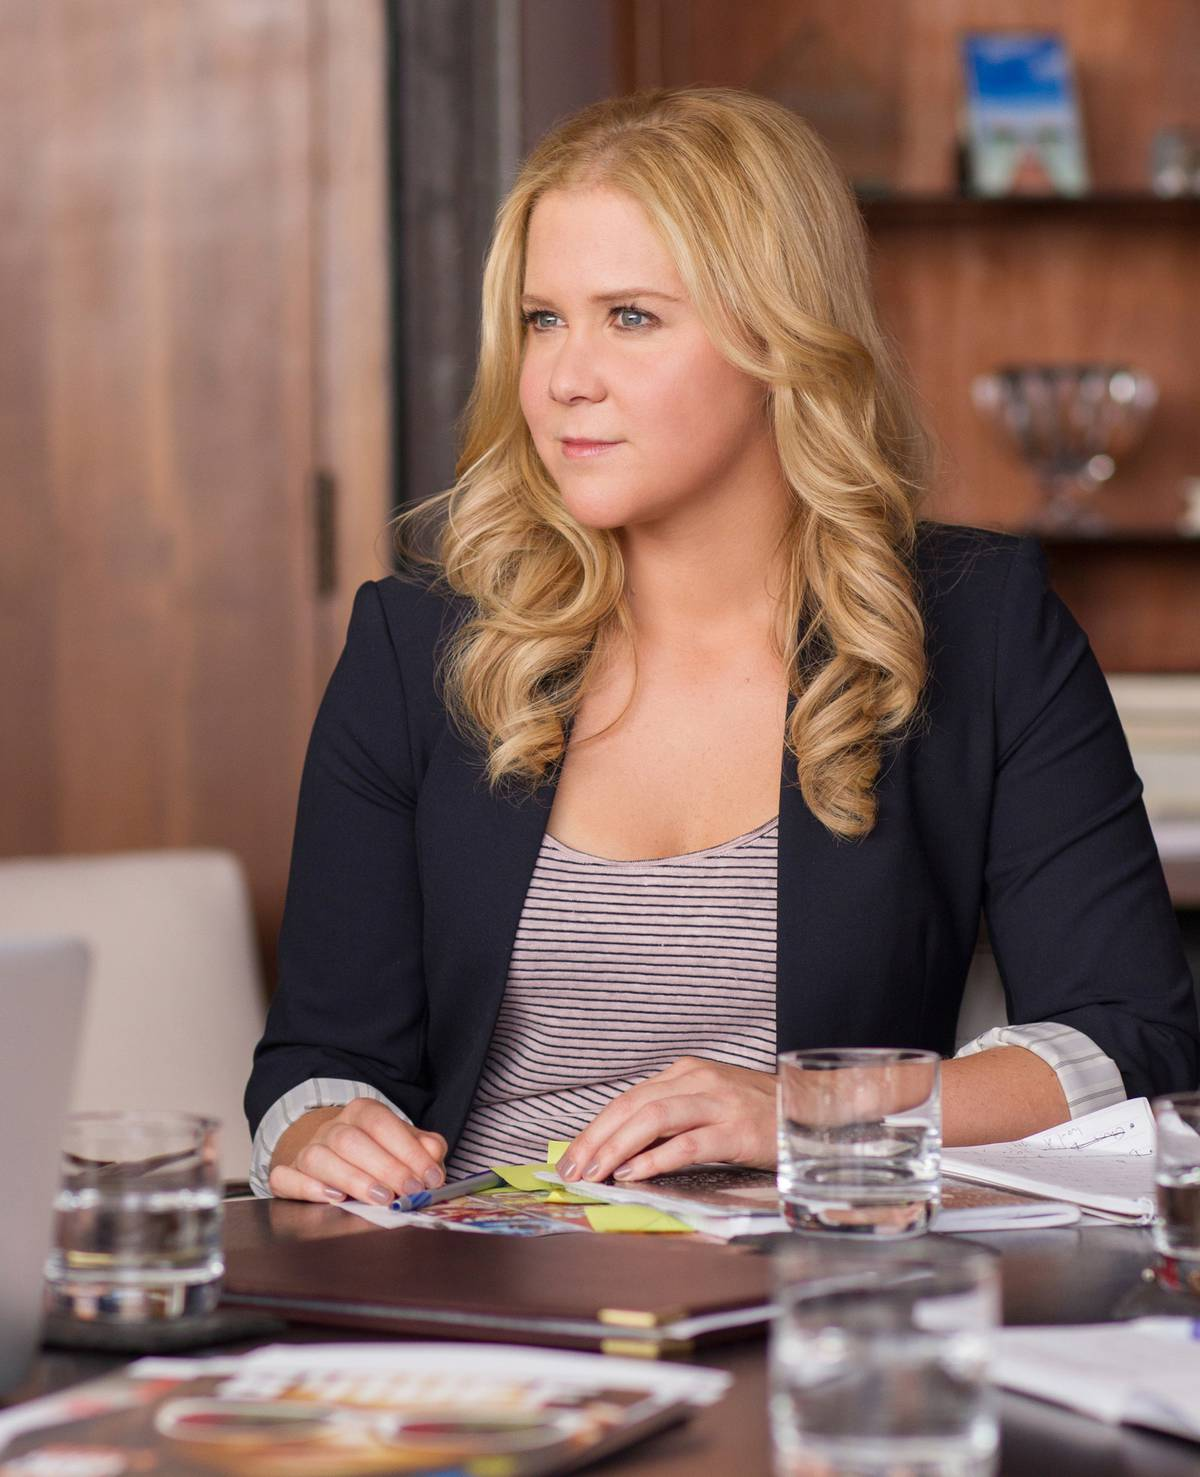 Amy Schumer's hilarious prank on paparazzi during pregnancy revealed in her new documentary